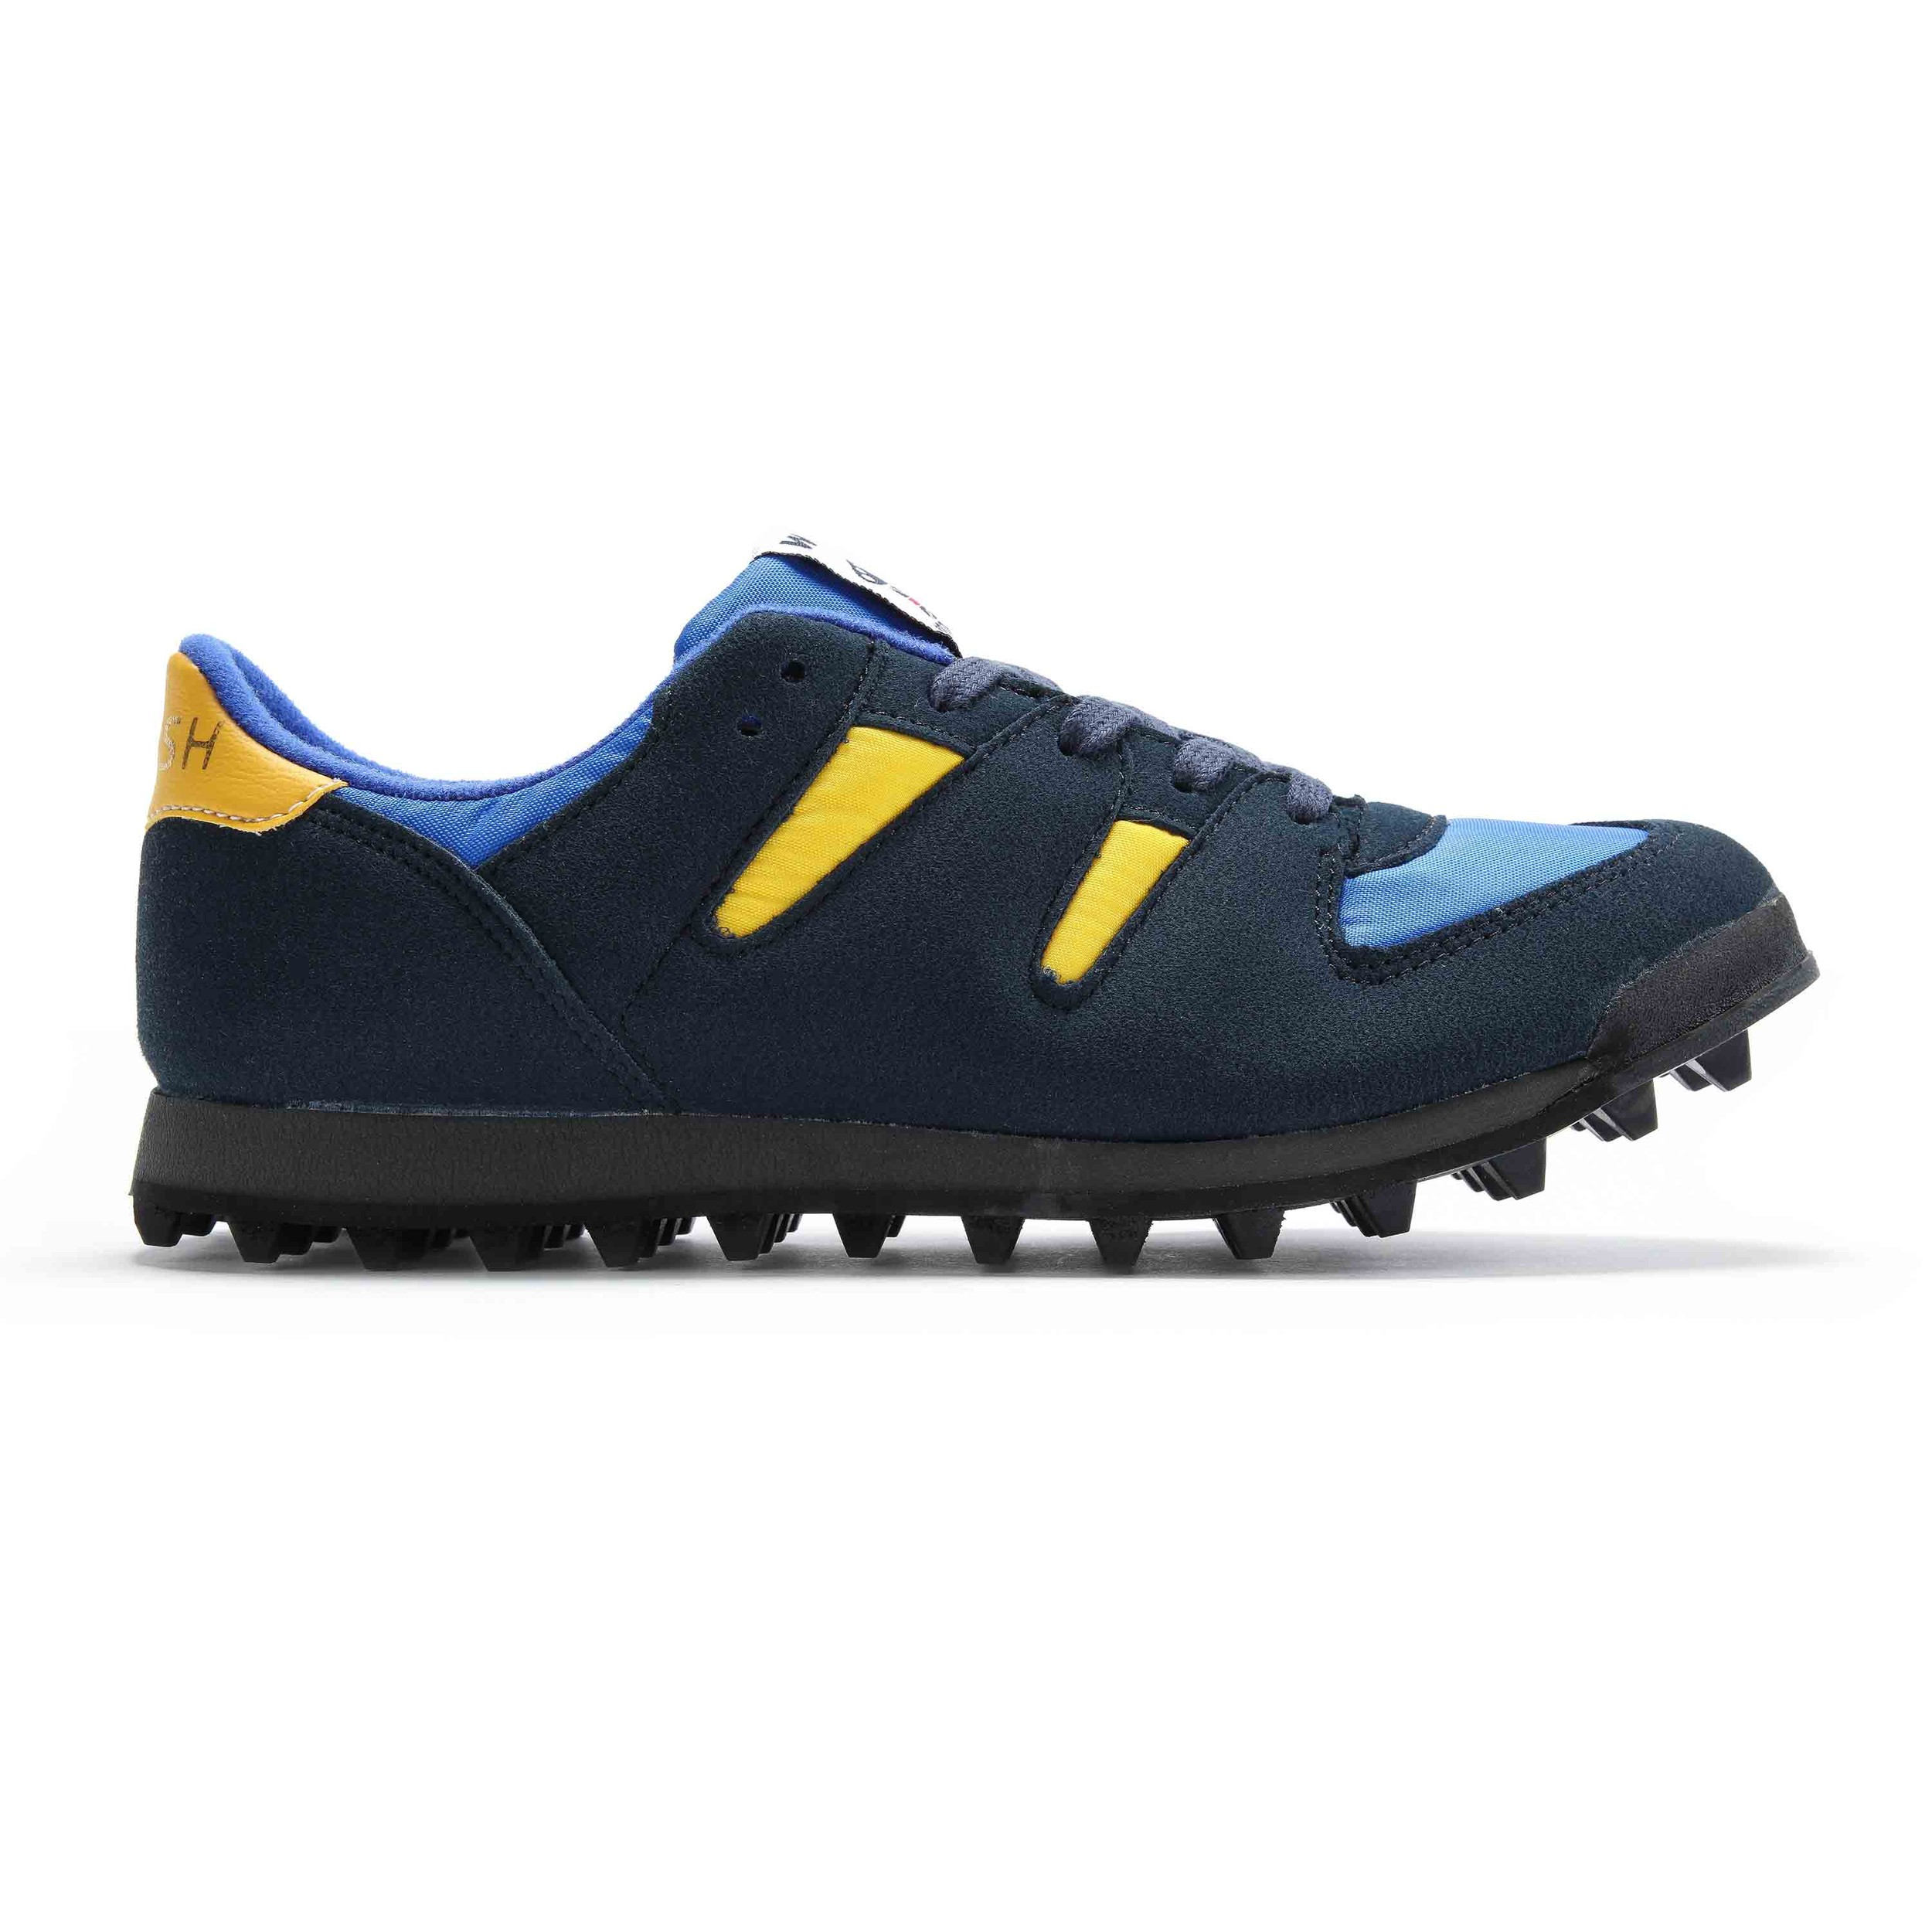 Cross Country Running Shoes With Spikes Uses